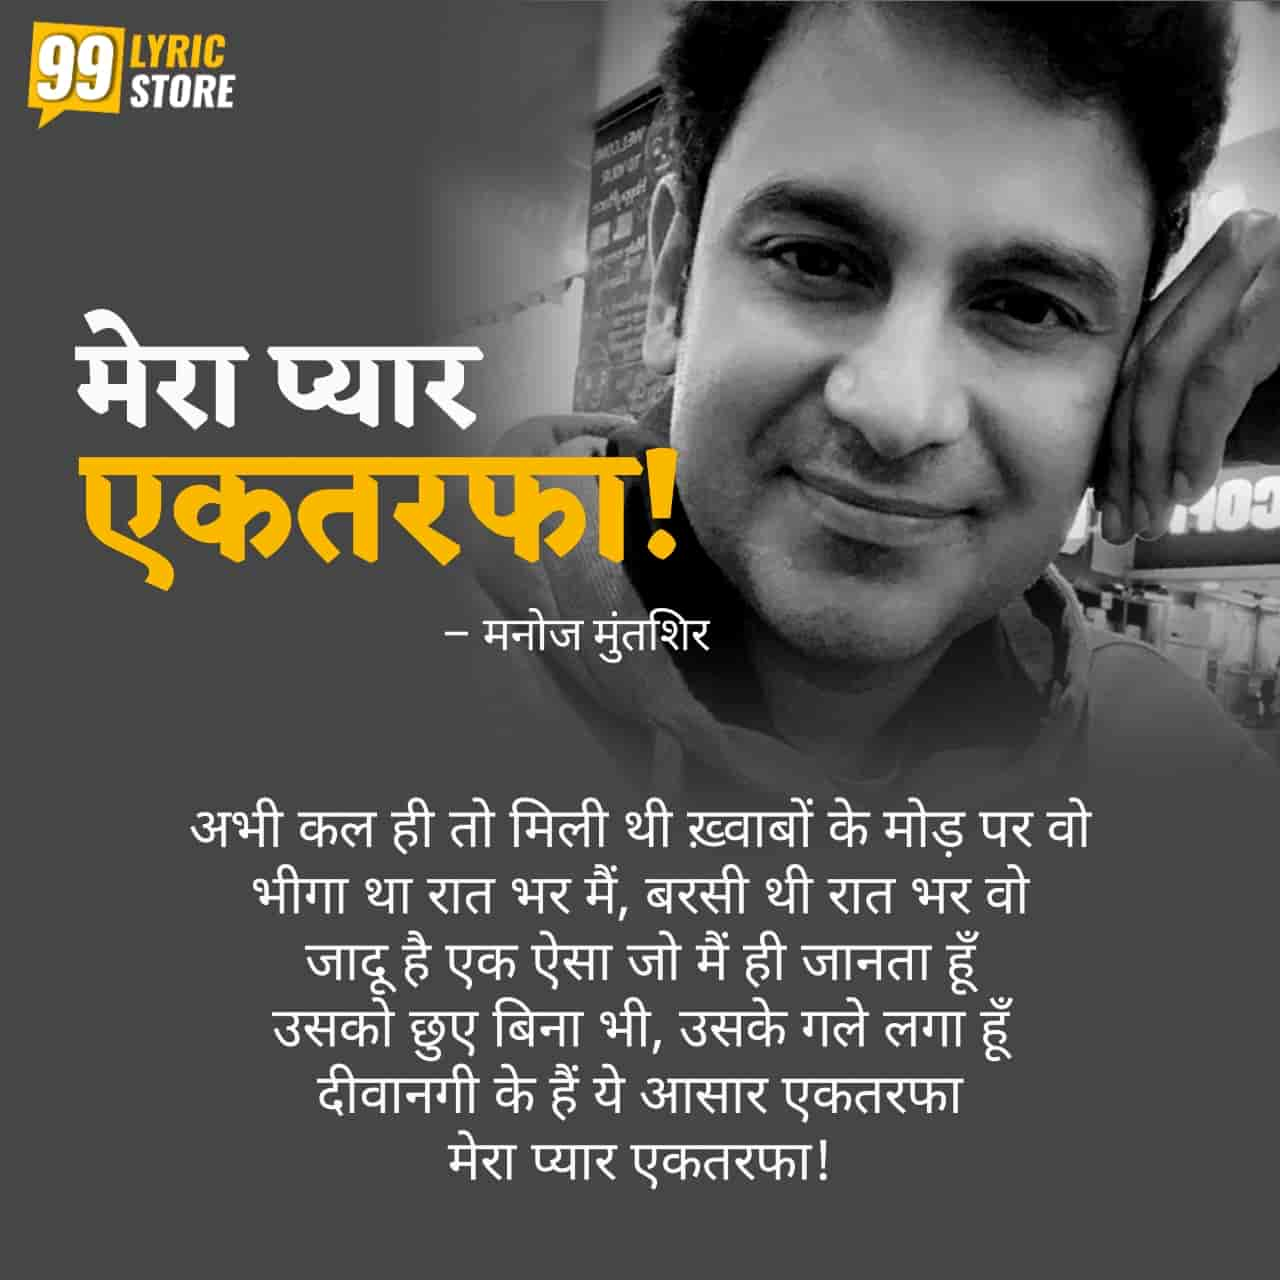 Renowned lyricist Manoj Muntashir recited two Nazm(Poetry),  called 'Mera Pyaar Ektarfa' which is very loving and beautiful. This Nazm(Poetry) depicts